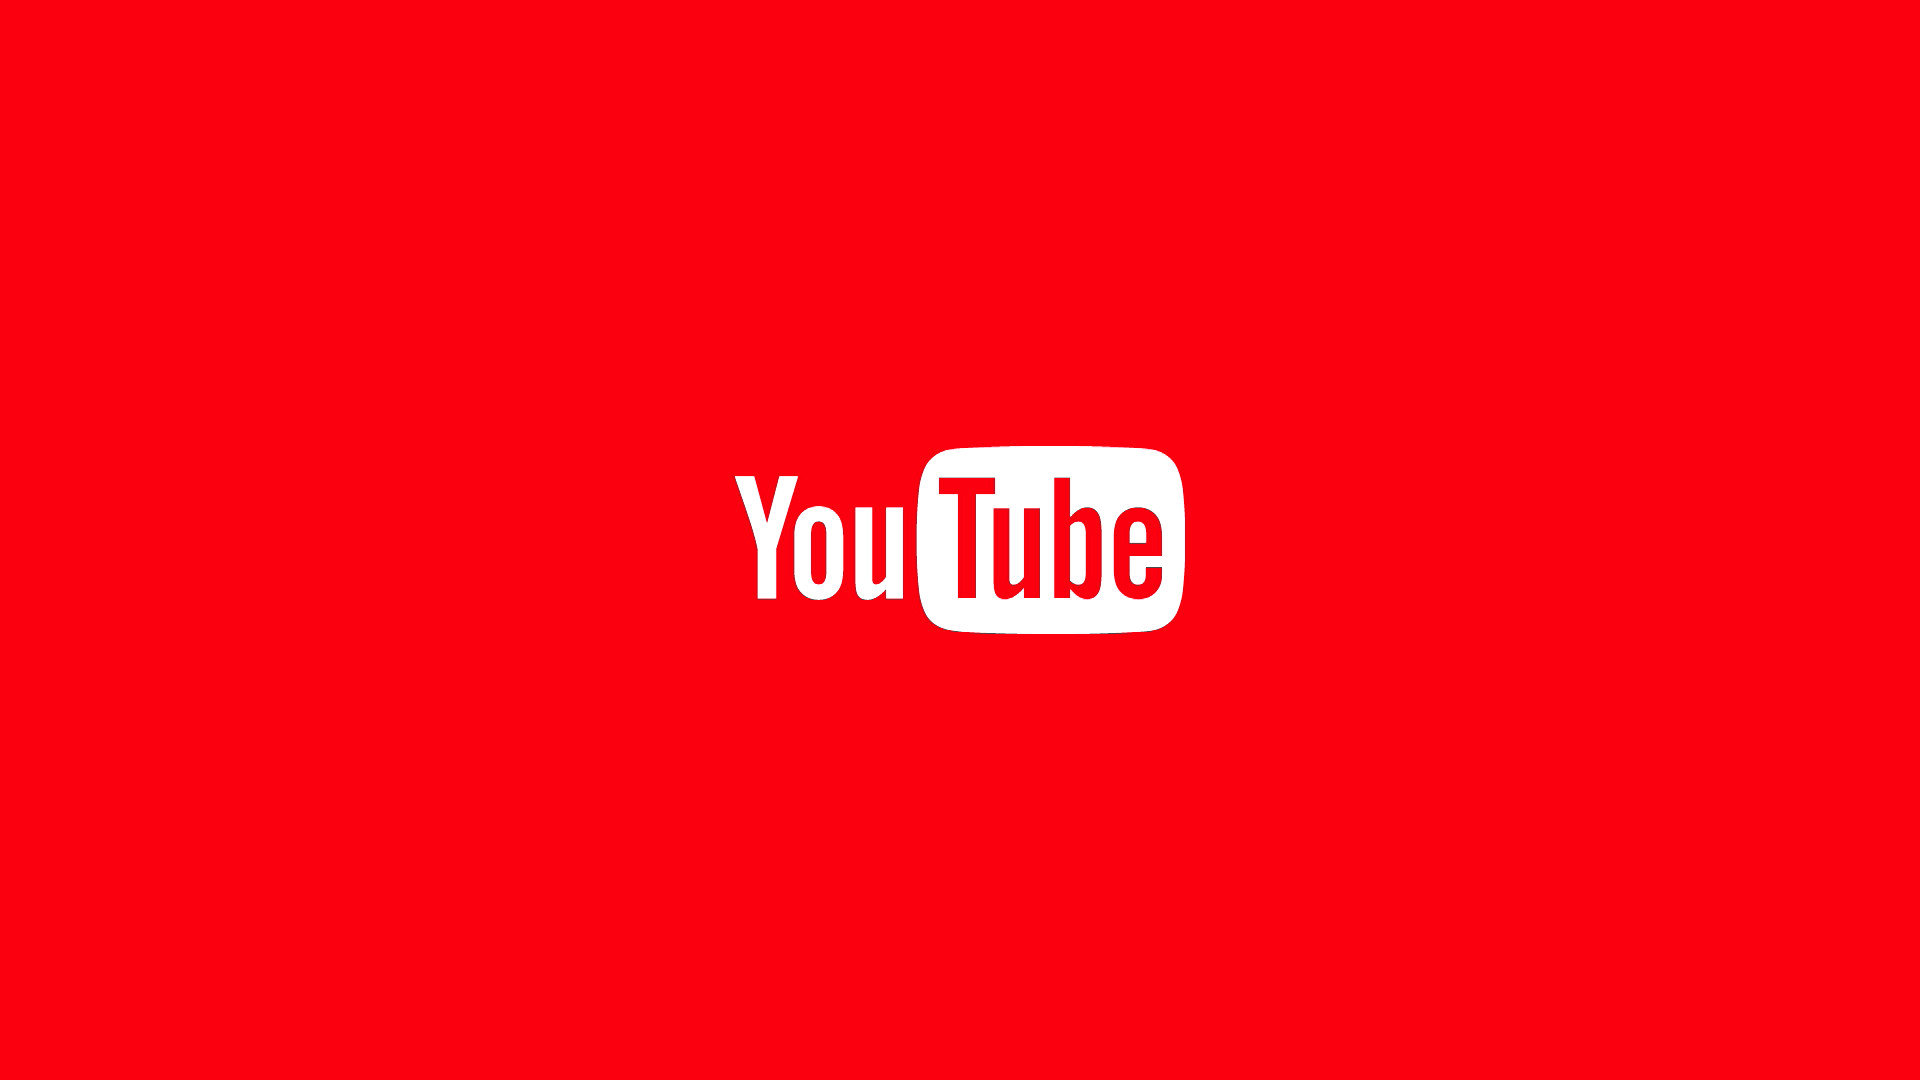 High resolution Youtube full hd 1920x1080 background ID:26760 for desktop